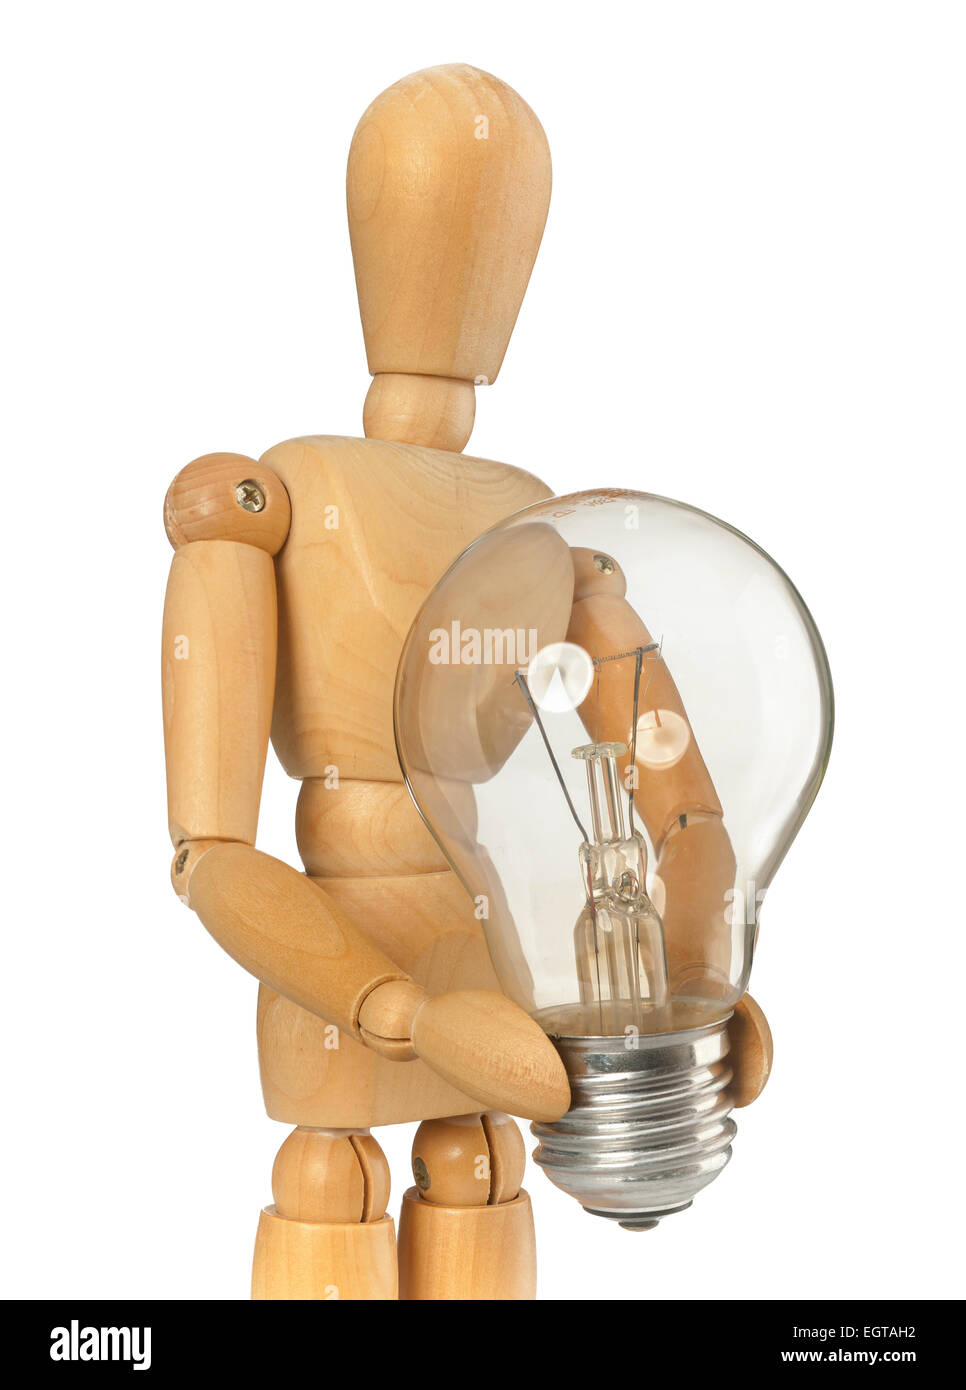 Wooden dummy that maintains a light bulb in hand on white background Stock Photo